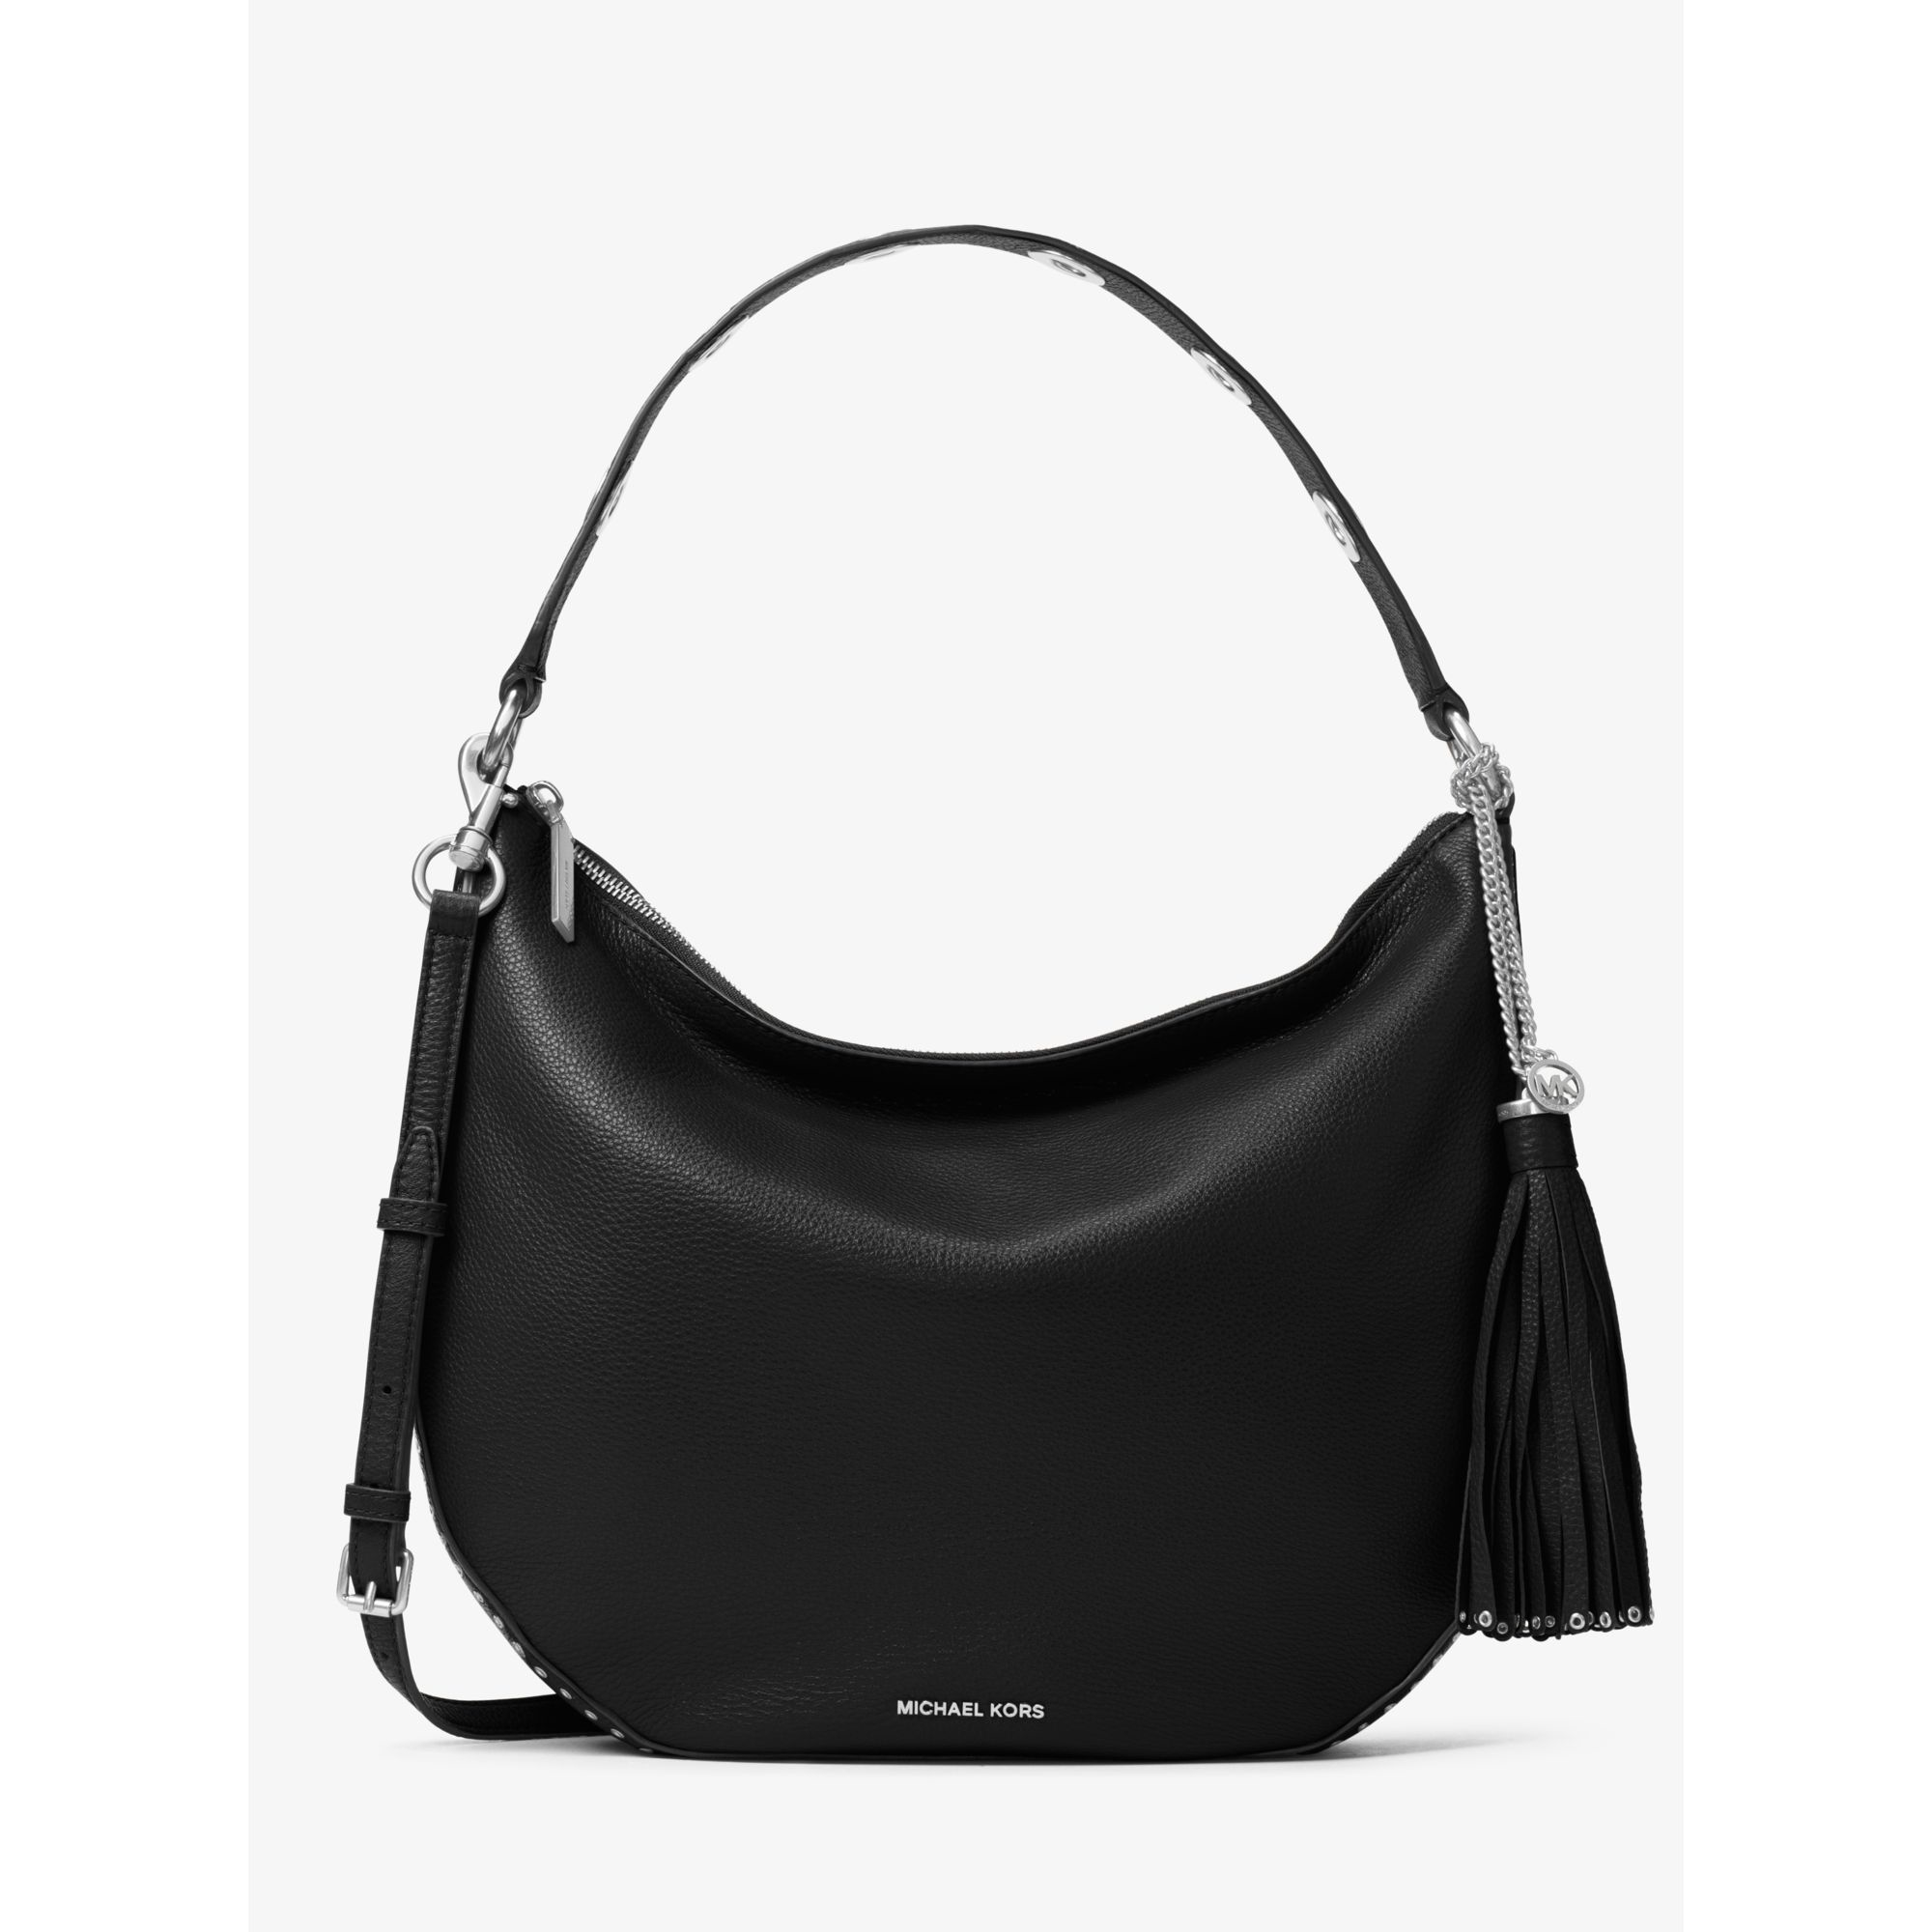 6d5e13c68fb0 Michael Kors Brooklyn Large Convertible Leather Hobo in Black - Lyst